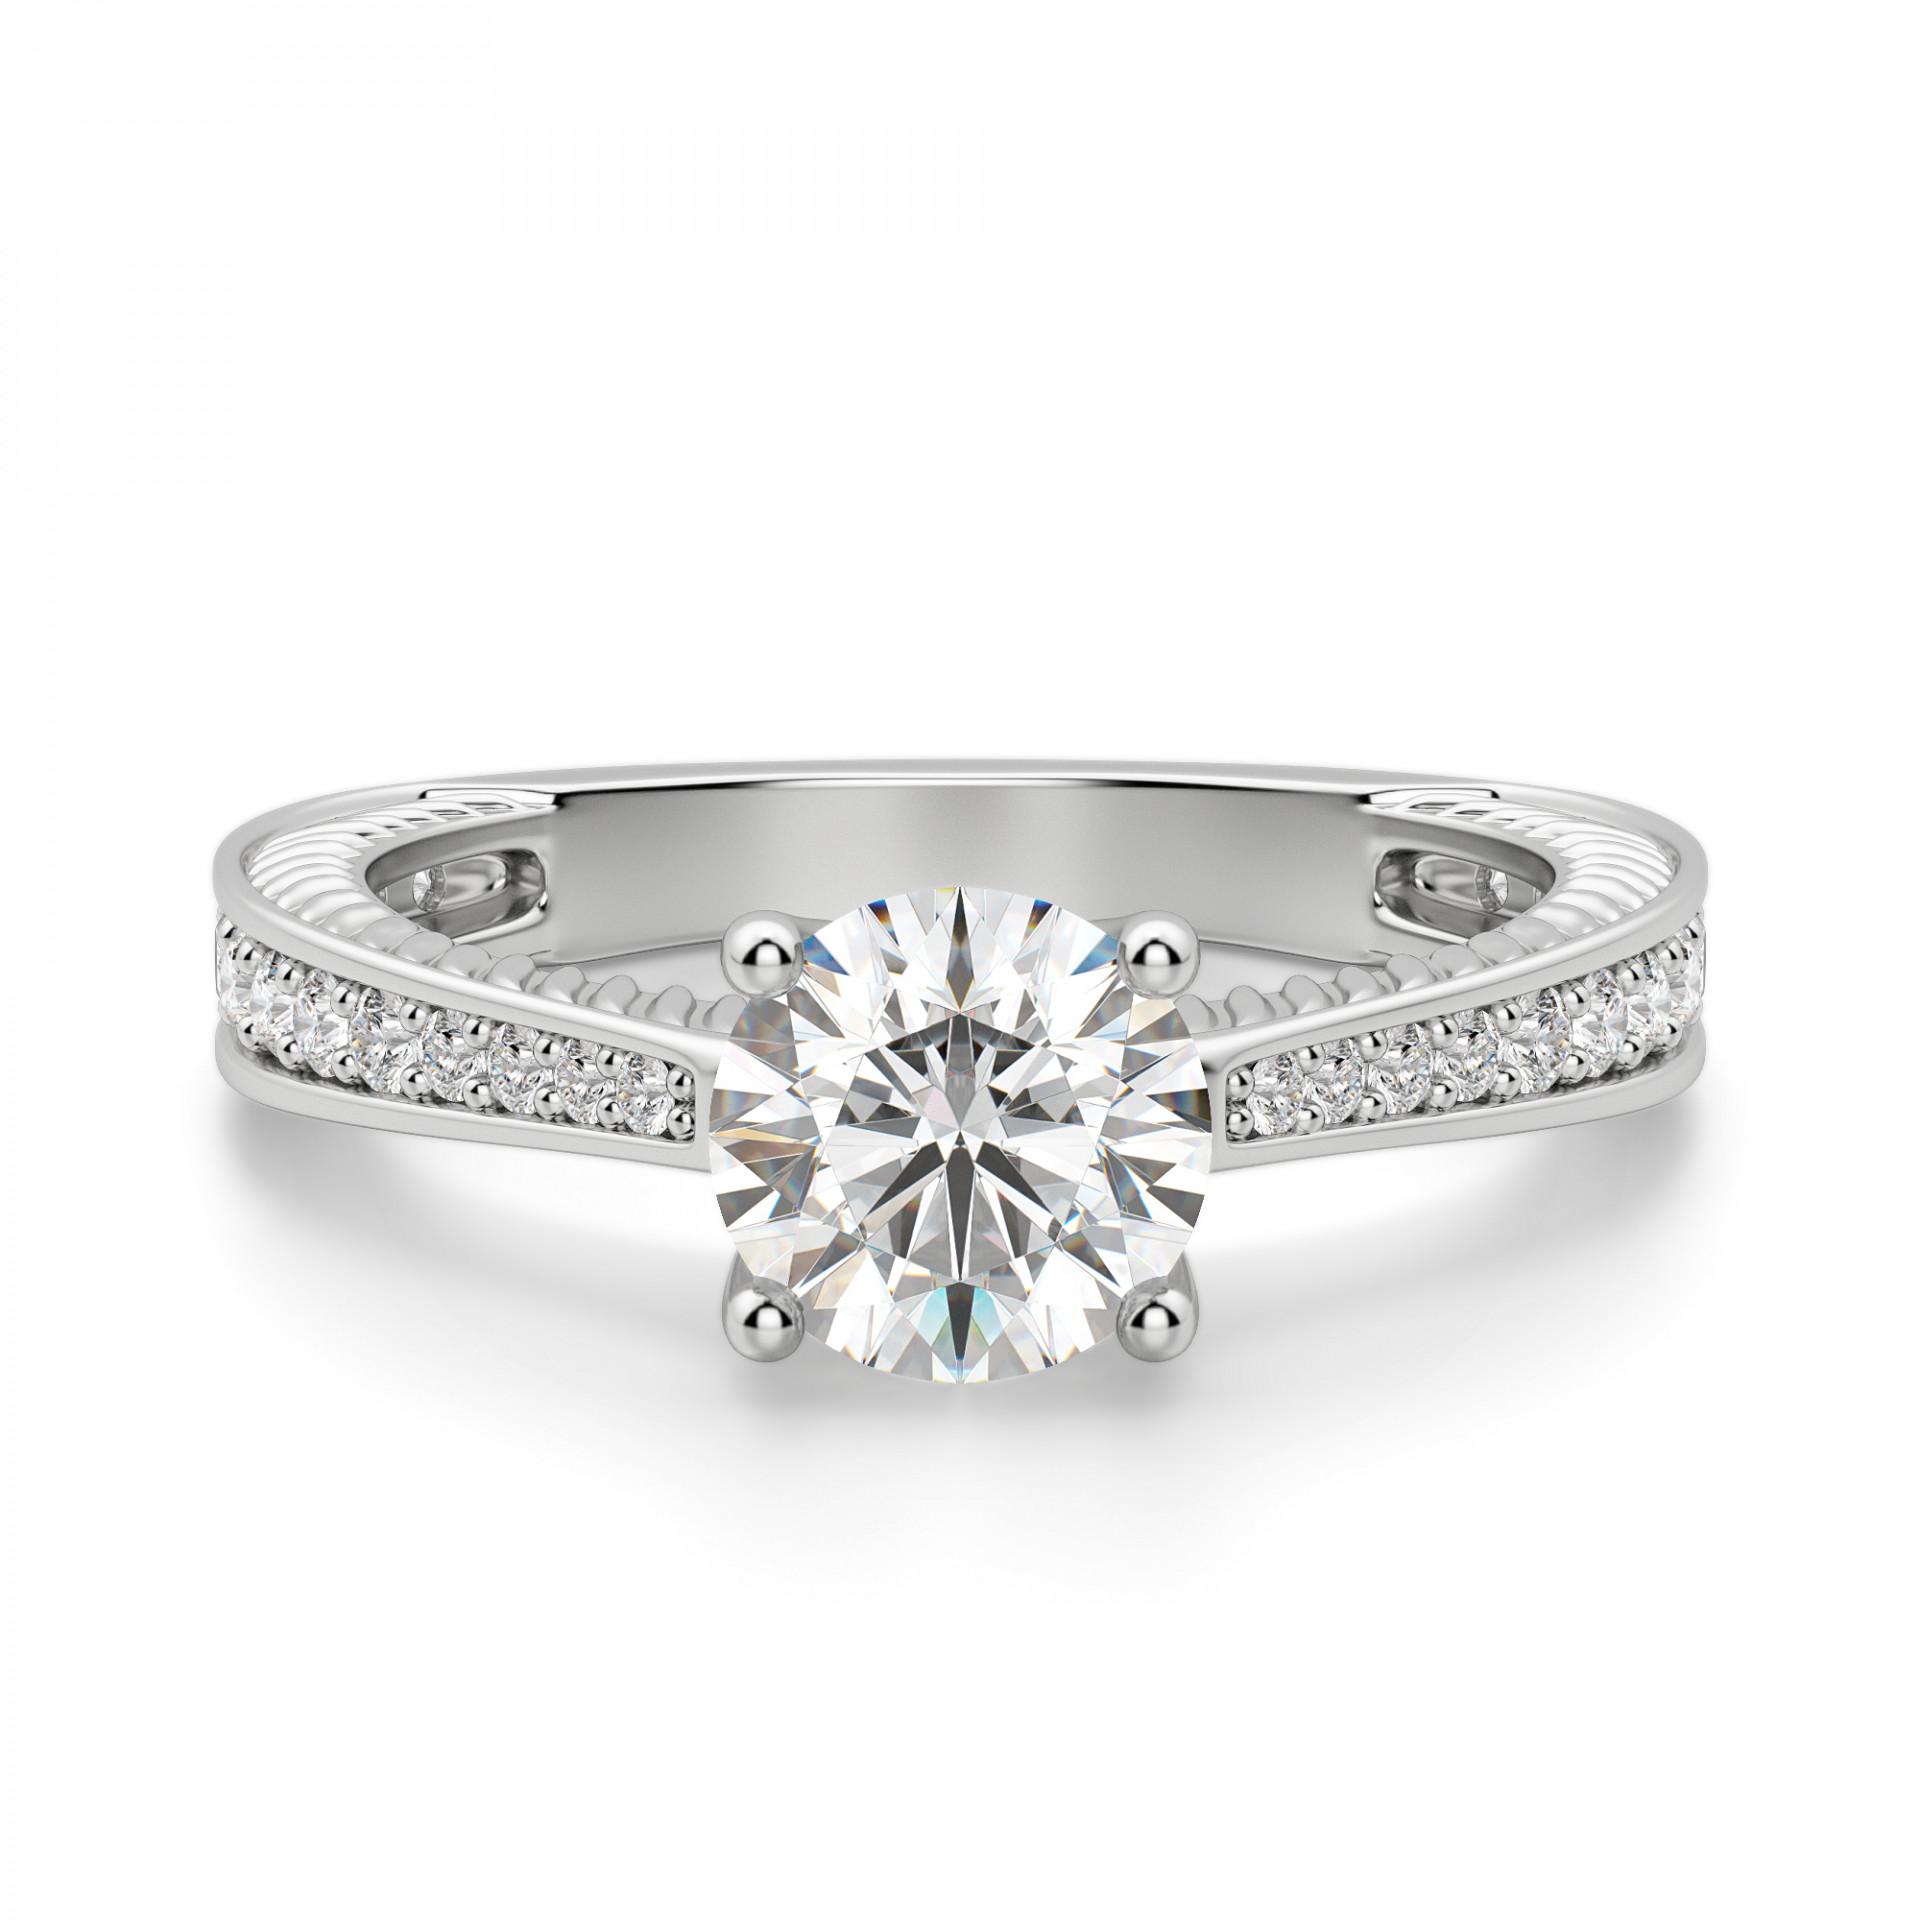 Engagement Rings Round Cut: Sage Accented Round Cut Engagement Ring